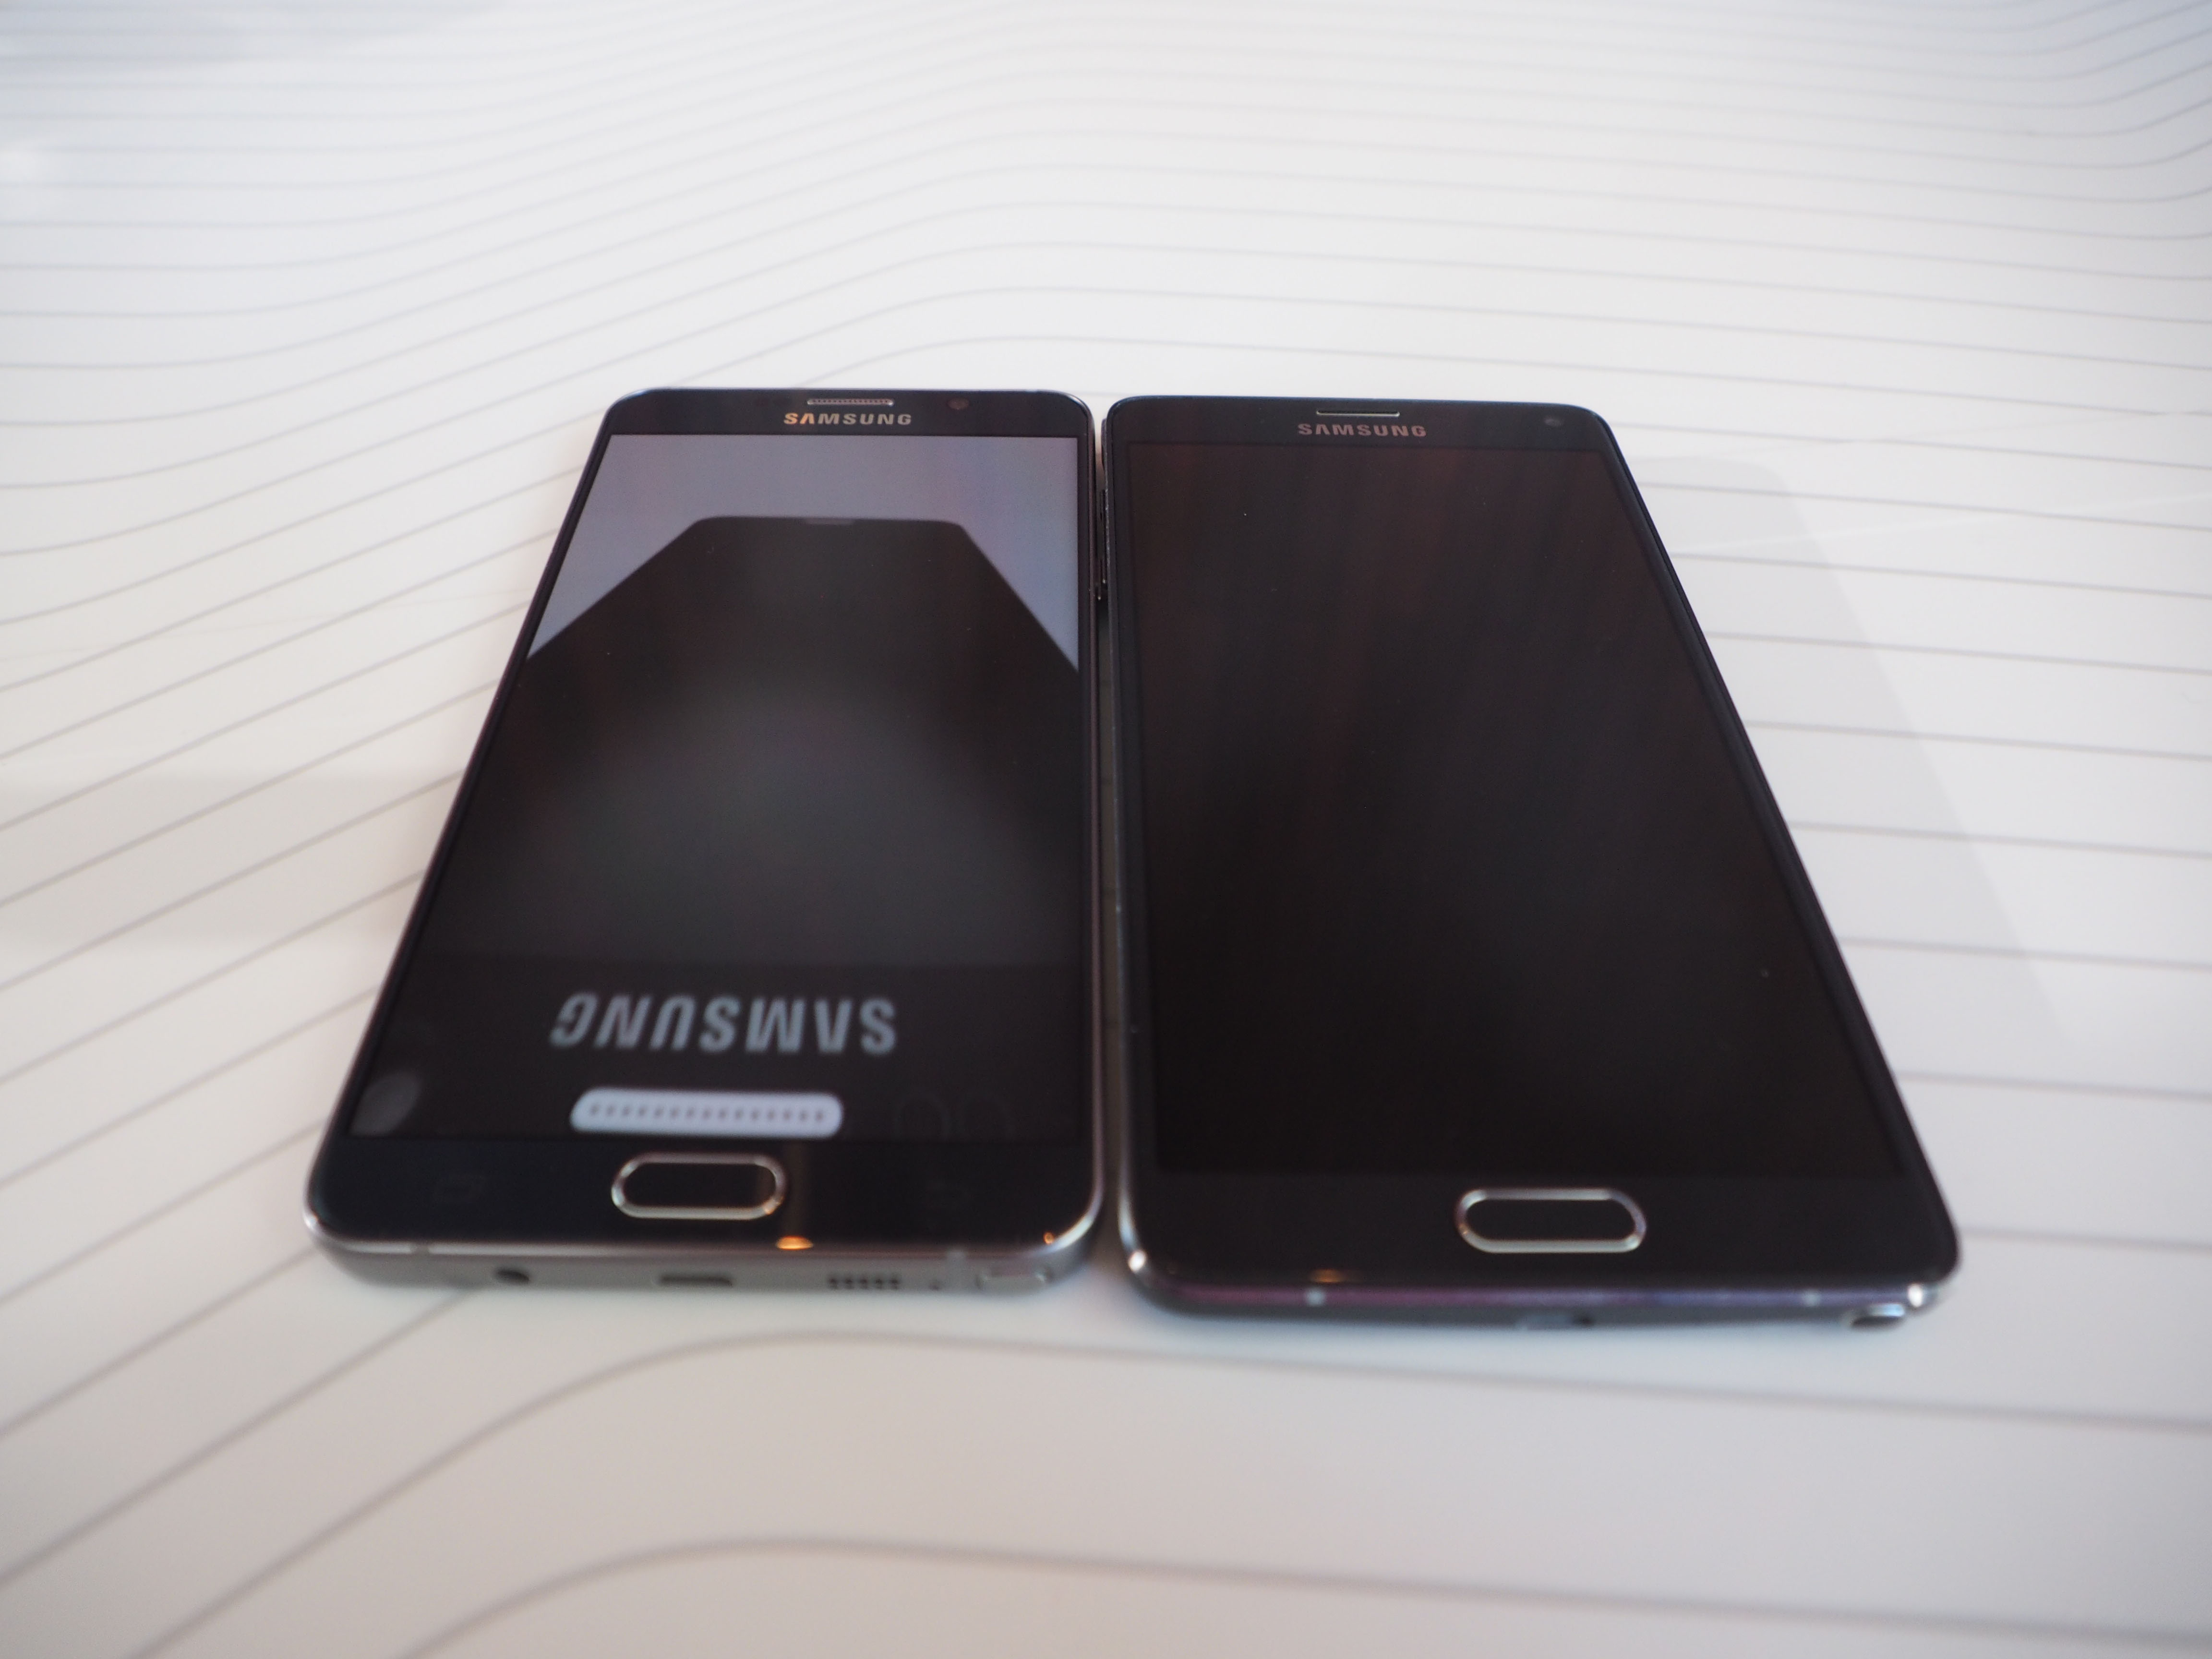 [Official] The Galaxy Note 5, Galaxy S6 Edge Plus are here, launch date set for August 21